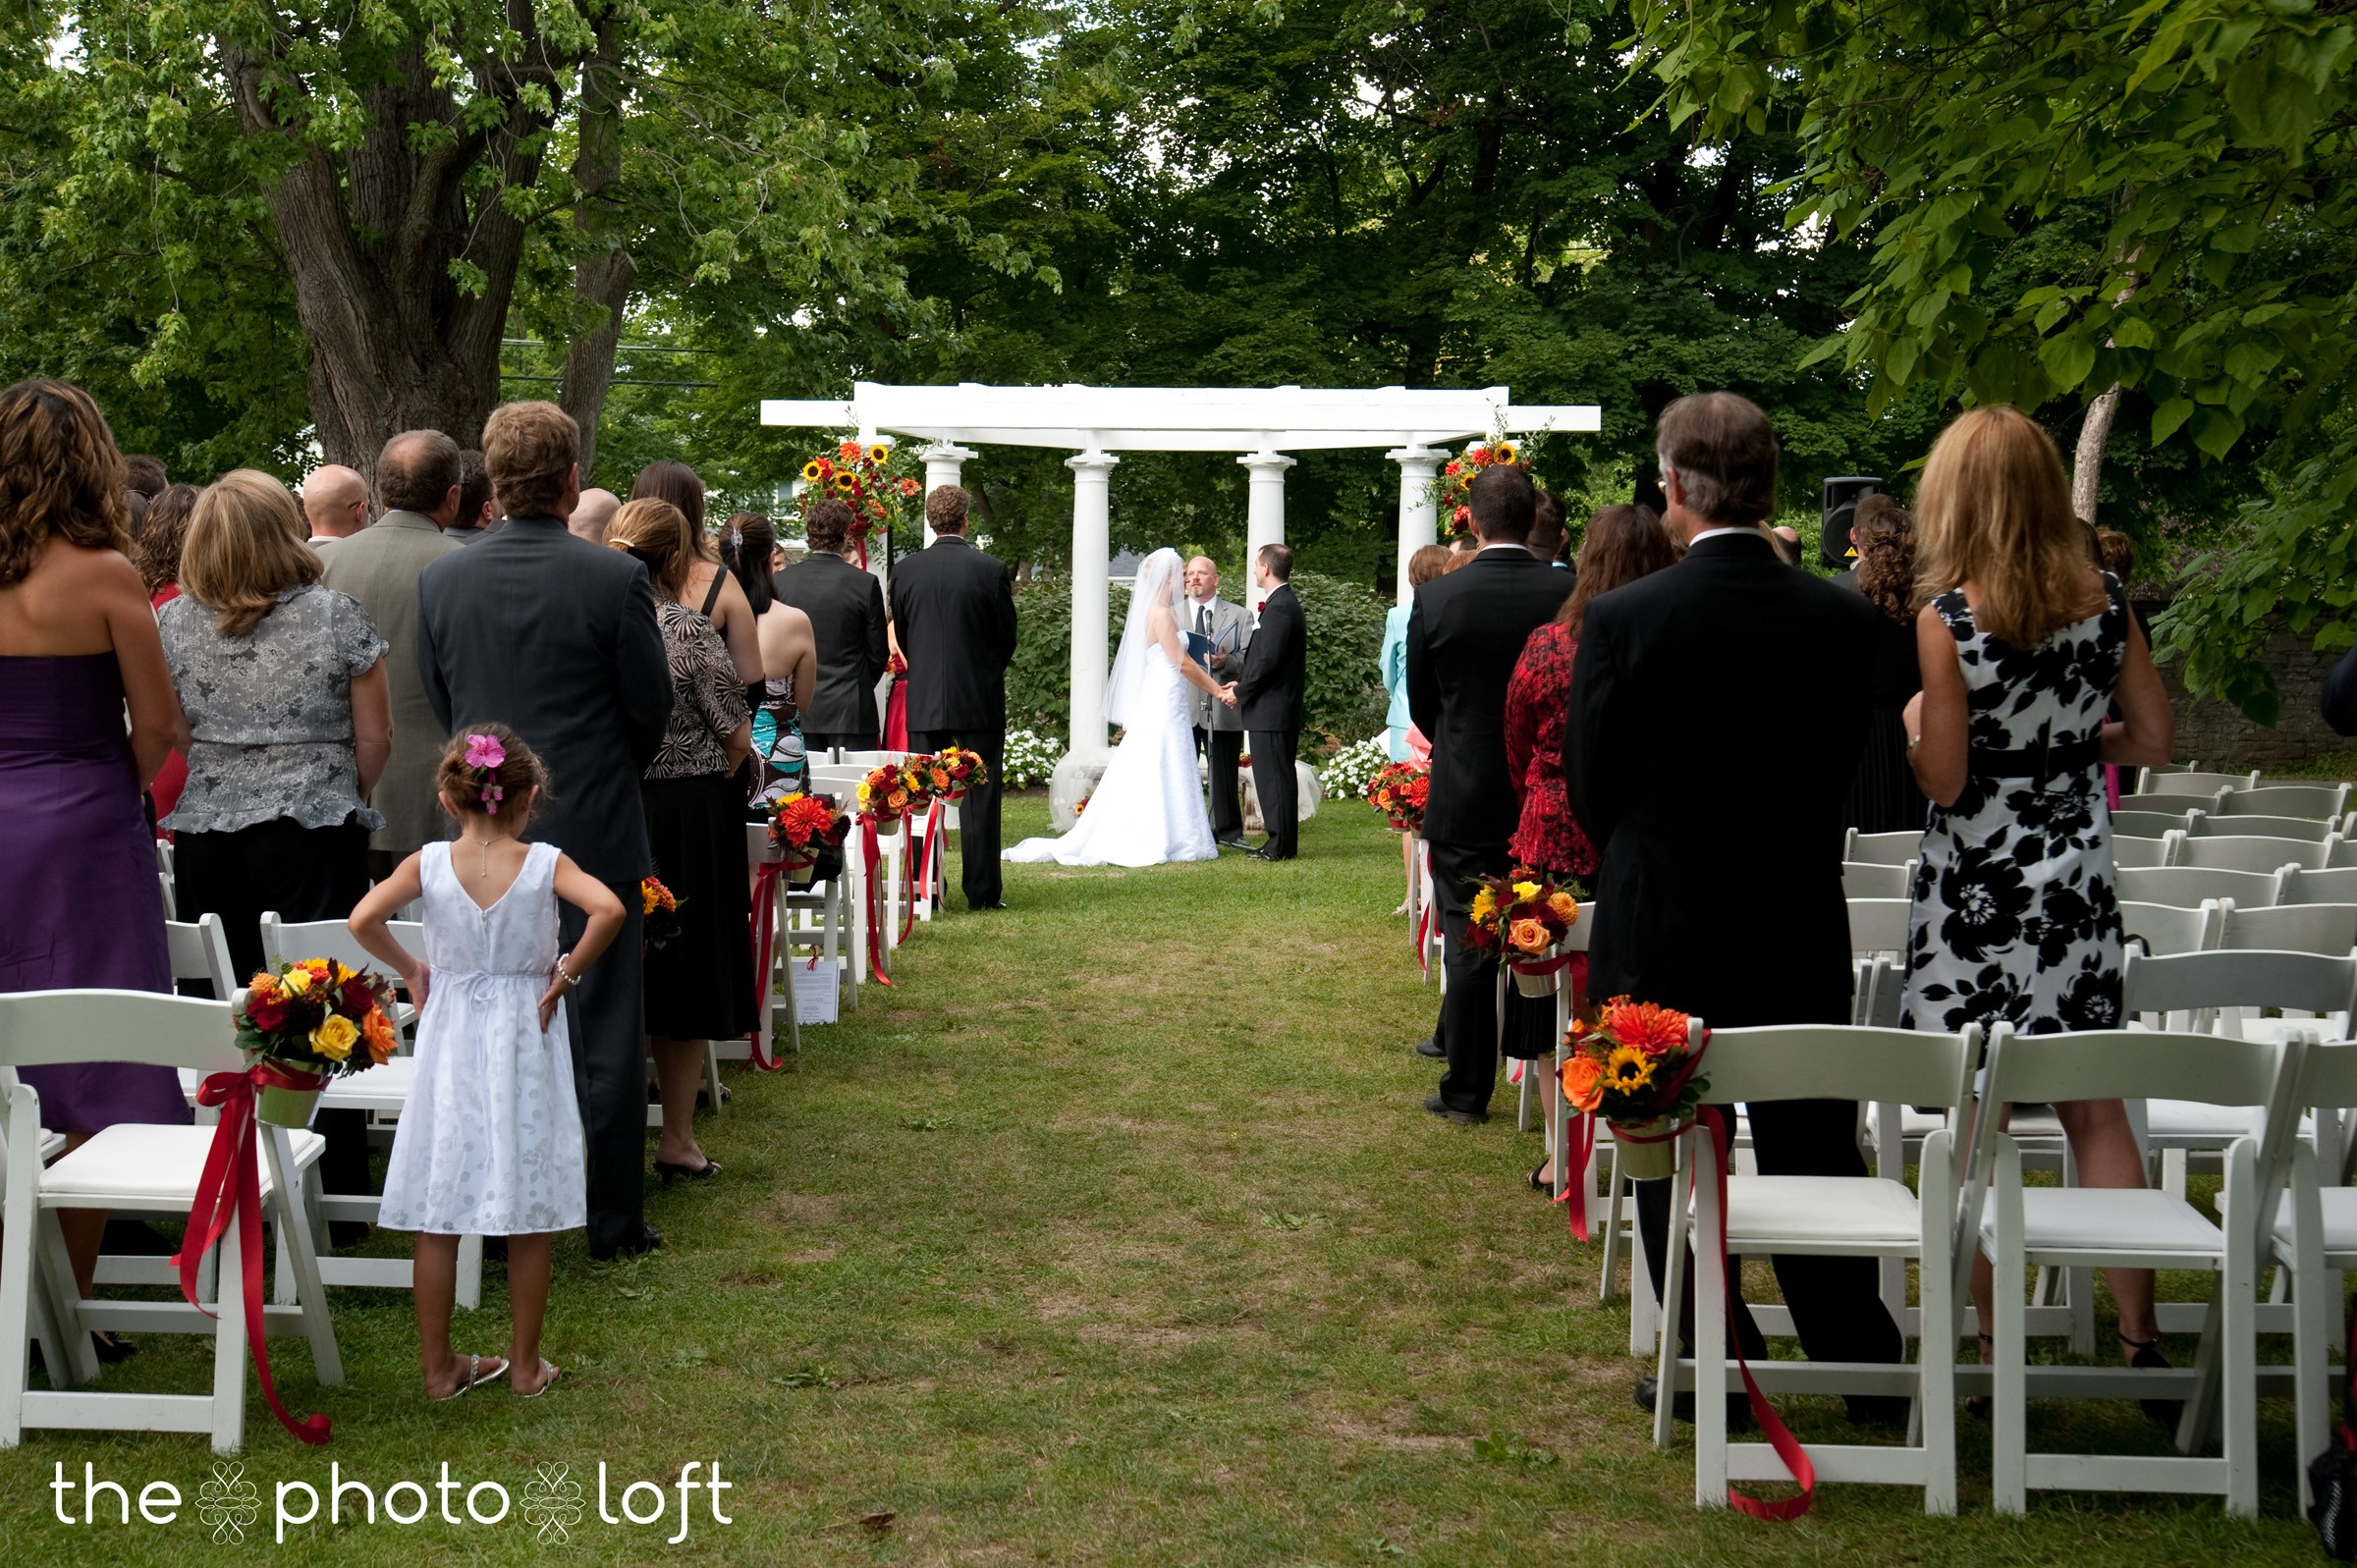 finger-lakes-wedding-ceremony_6685022293_o